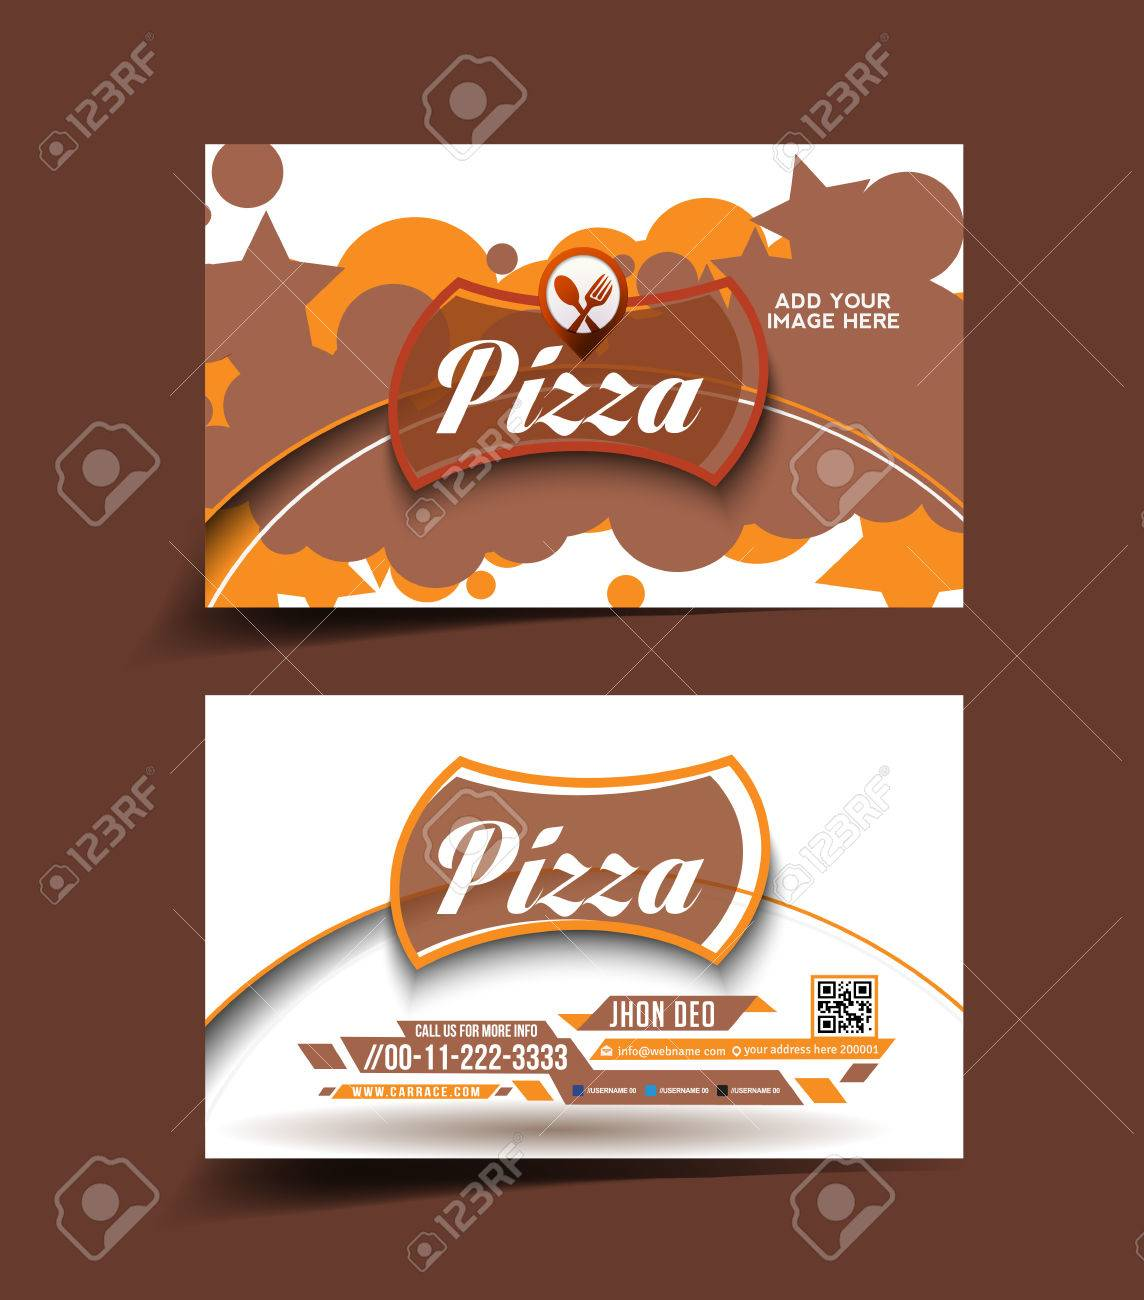 Pizza Store Business Card Set Royalty Free Cliparts, Vectors, And ...